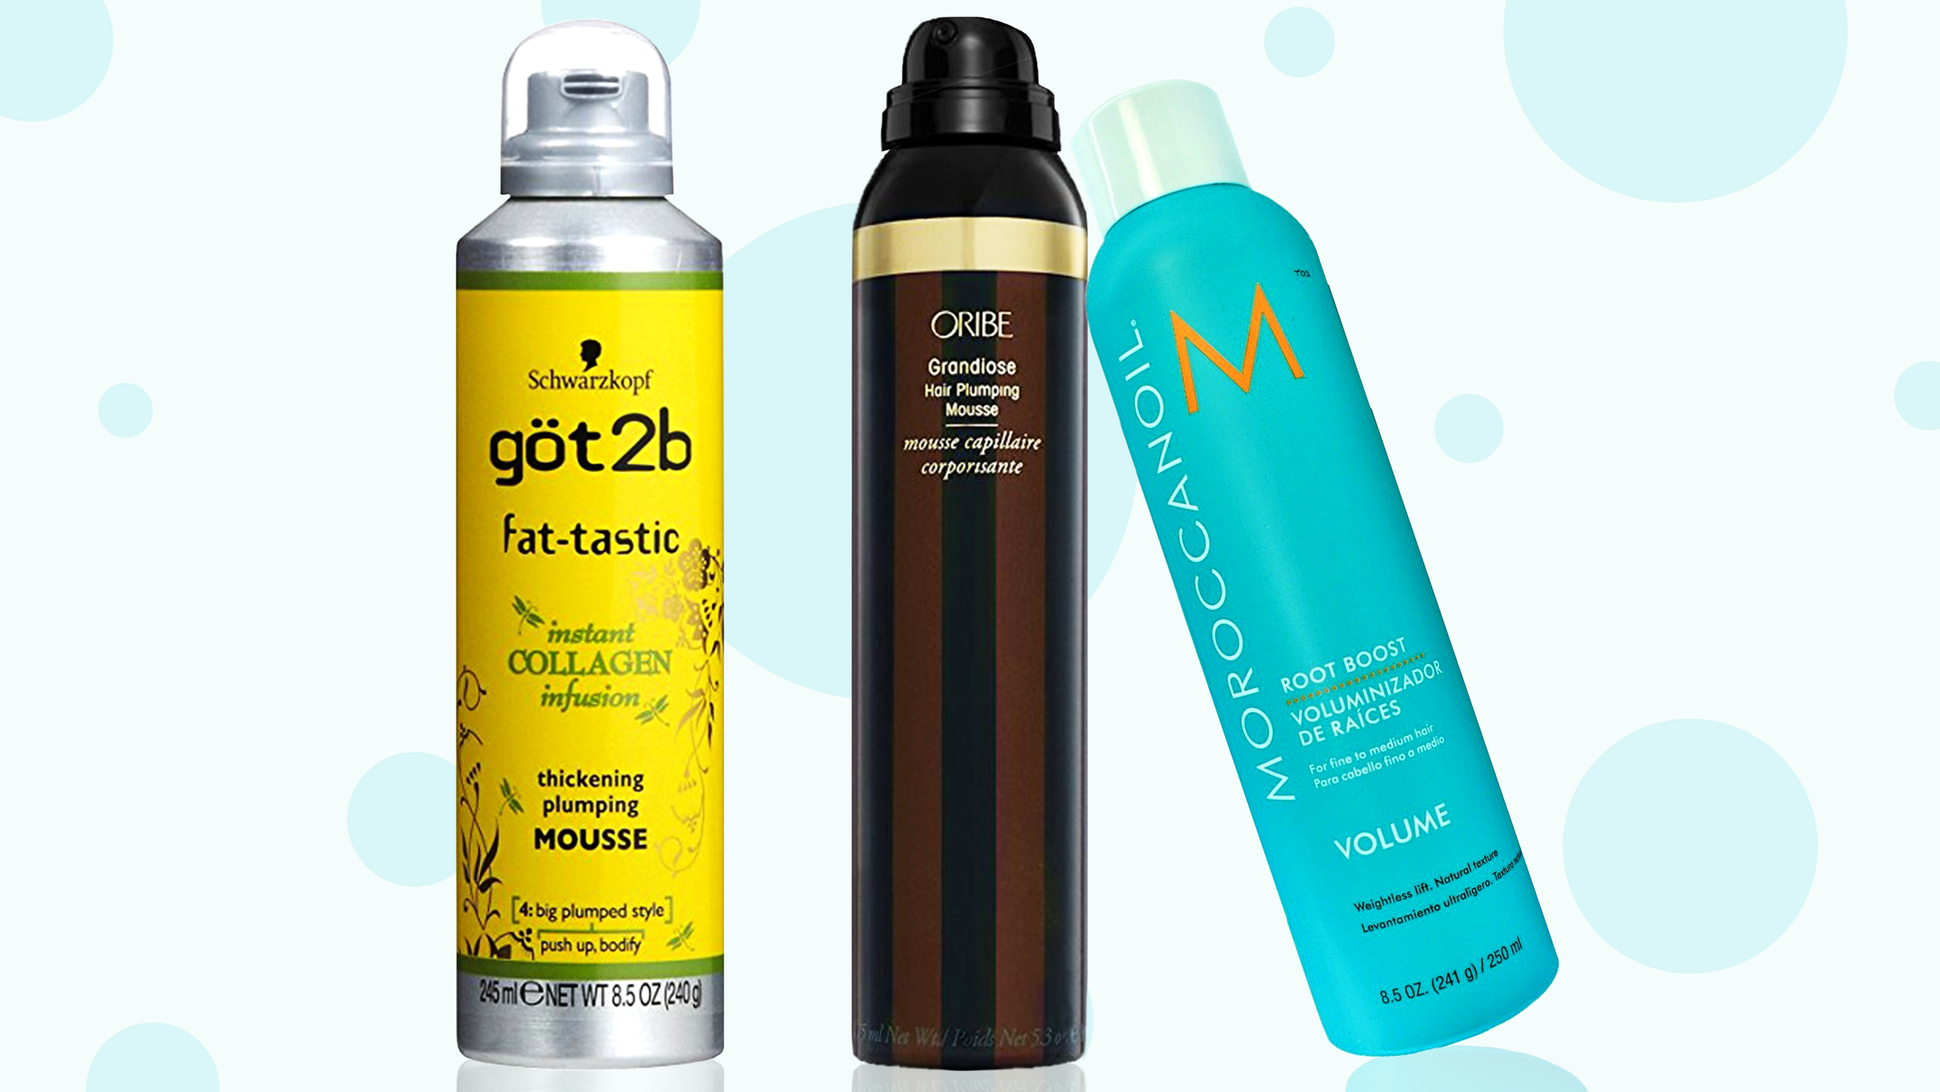 The Best Mousse For Every Hair Texture In 2020 Hair Mousse Bumble And Bumble Thickening Best Volumizing Mousse